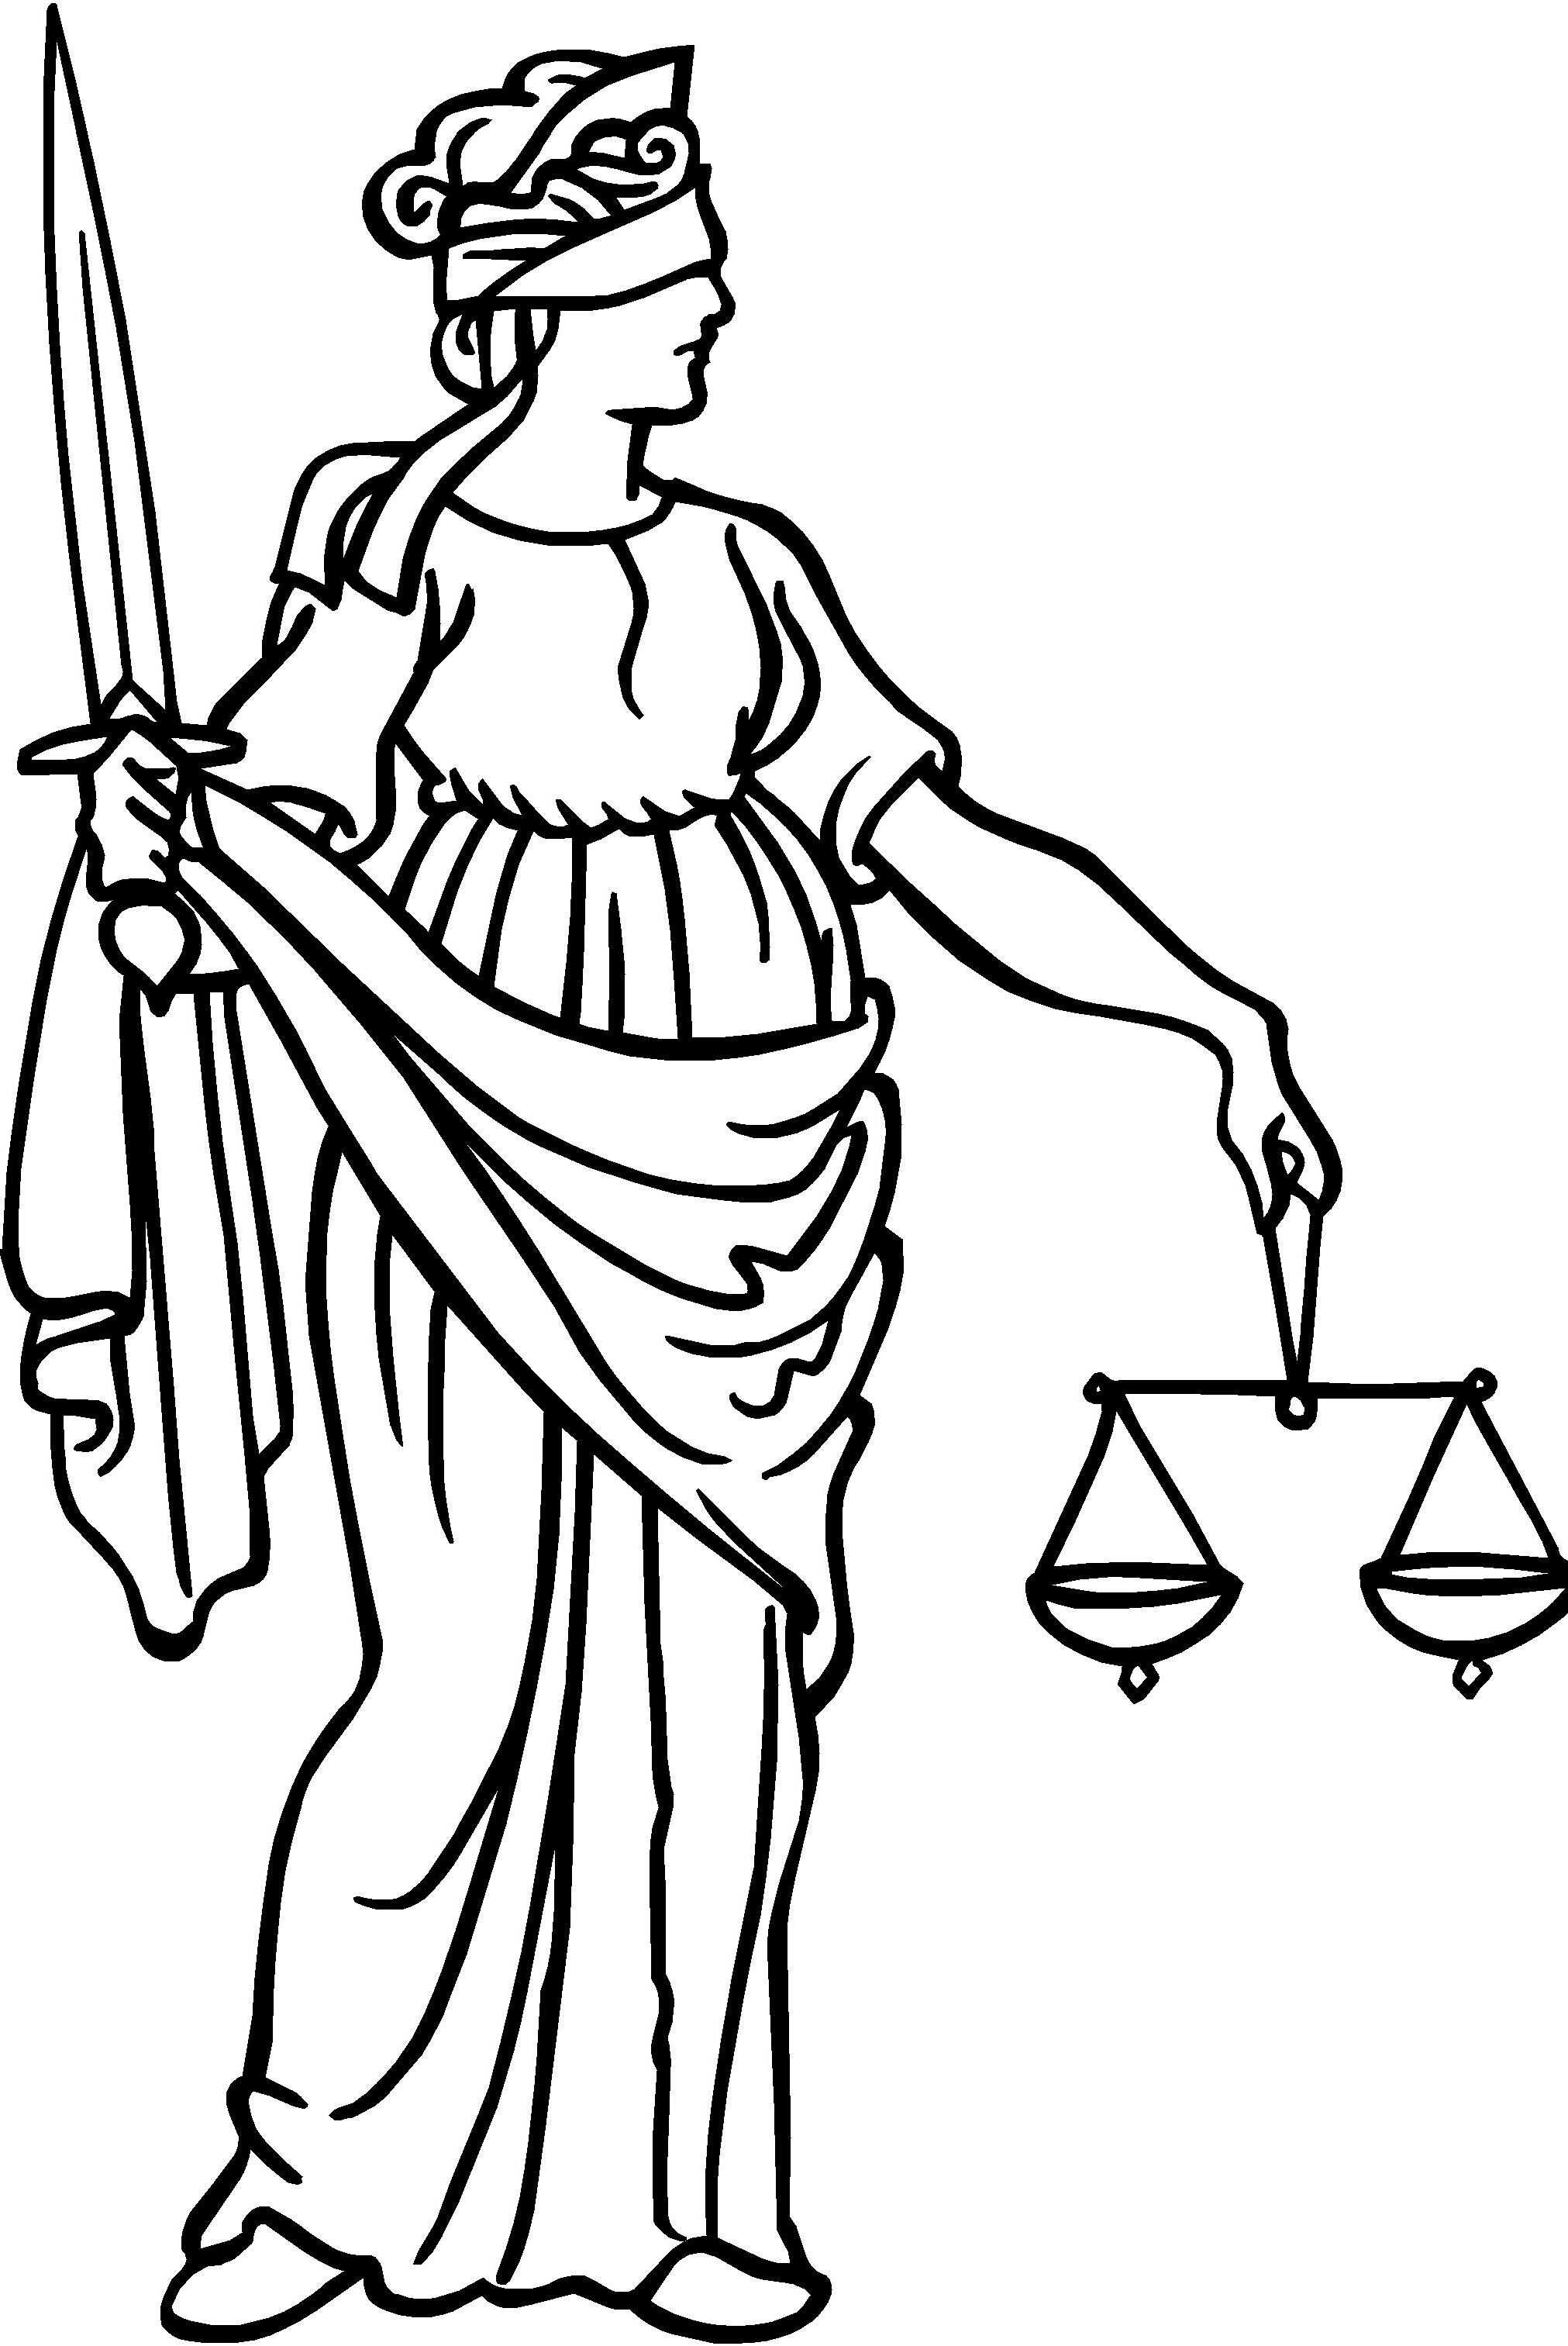 Healing clipart blind woman Book Free Art Justice on